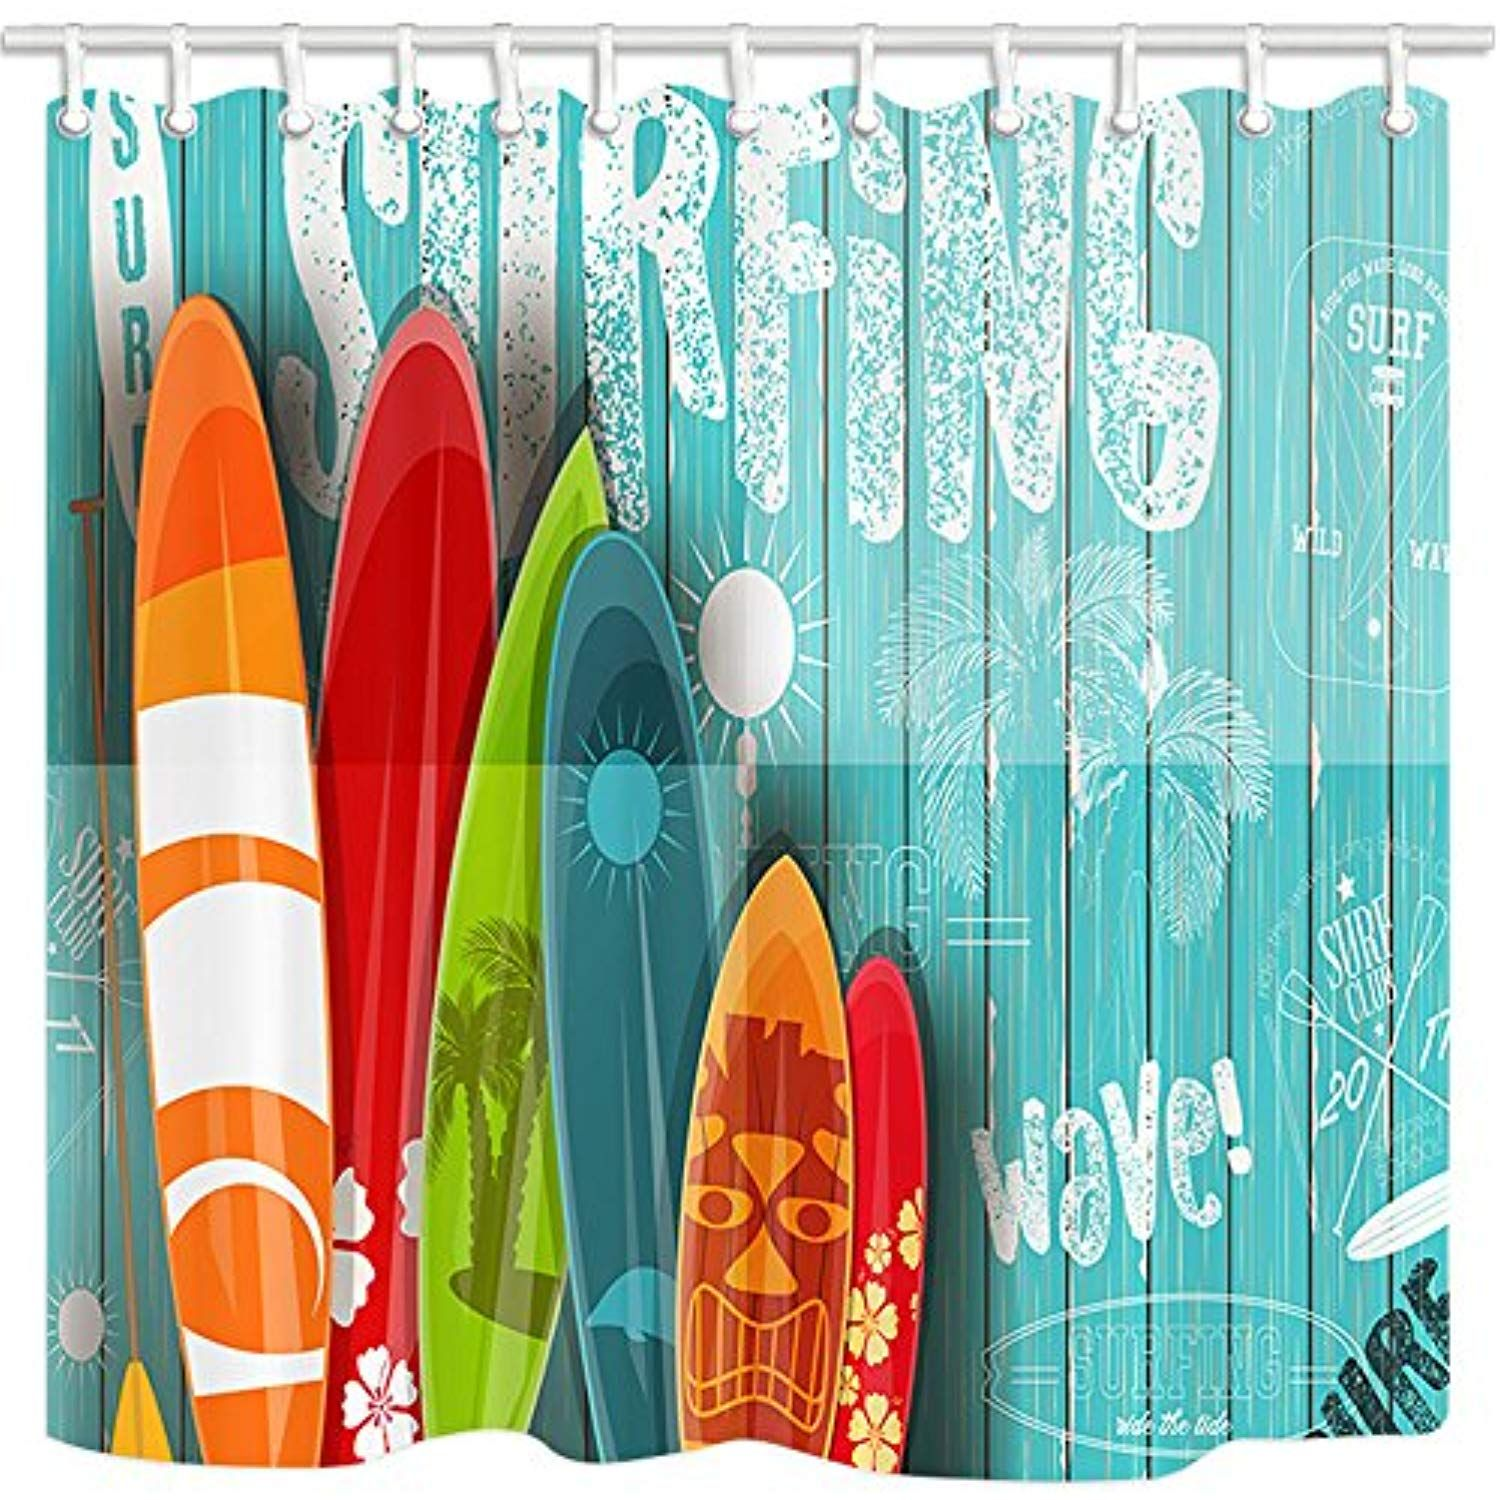 Nymb 3d Digital Printing Summer Surfing Shower Curtain Surfboard In Vintage Style On Turquoise Wooden Mildew Resistant Fabric Bathroom Decora Beach Backdrop Photography Backdrops Vintage Posters